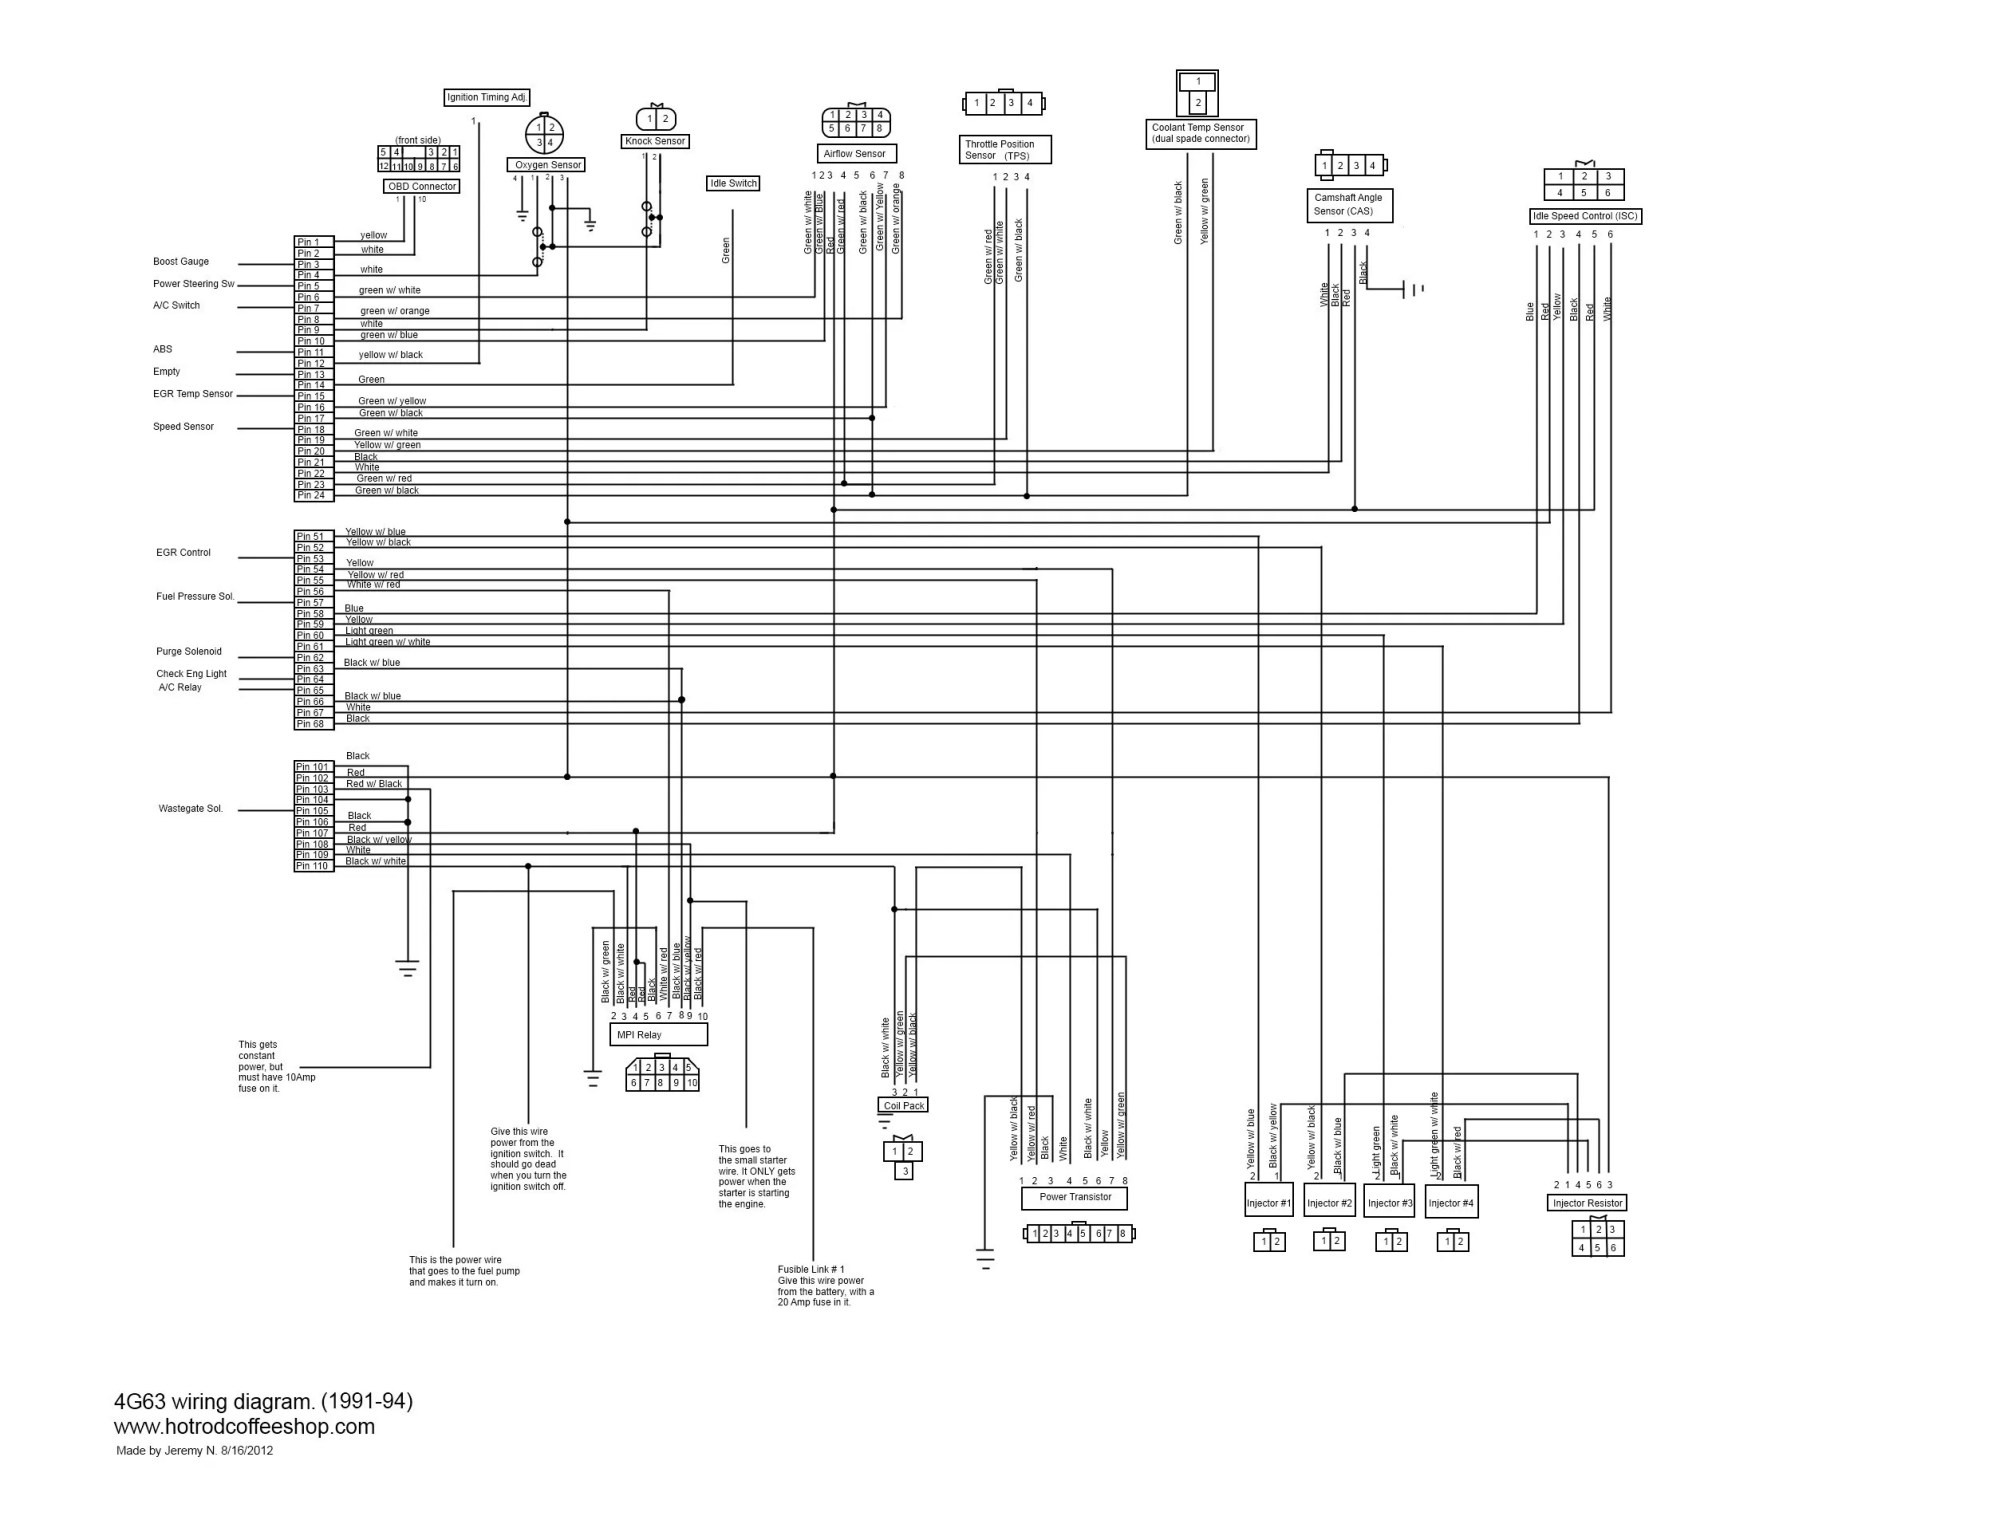 hight resolution of 2000 mitsubishi engine diagram wiring diagram meta mitsubishi outlander engine diagram 2000 mitsubishi engine diagram wiring